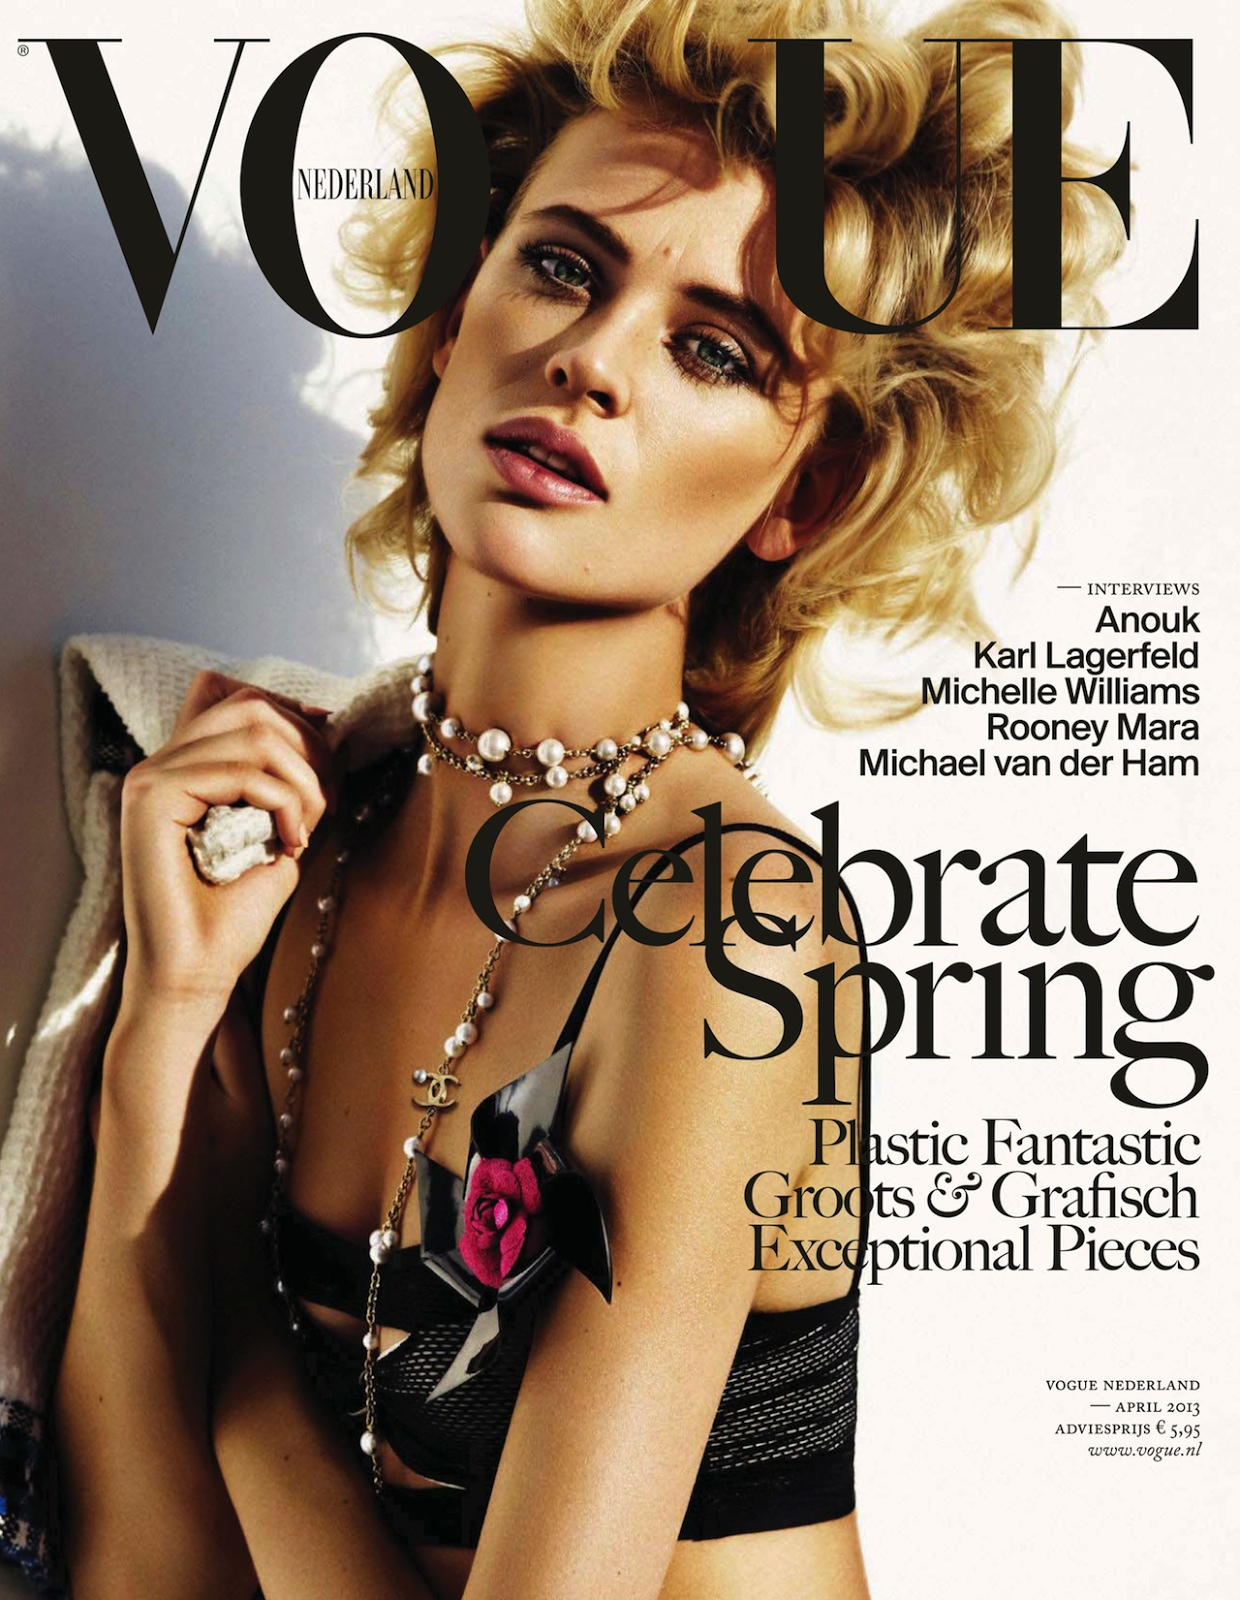 vogue netherlands april 2013 cover kopie